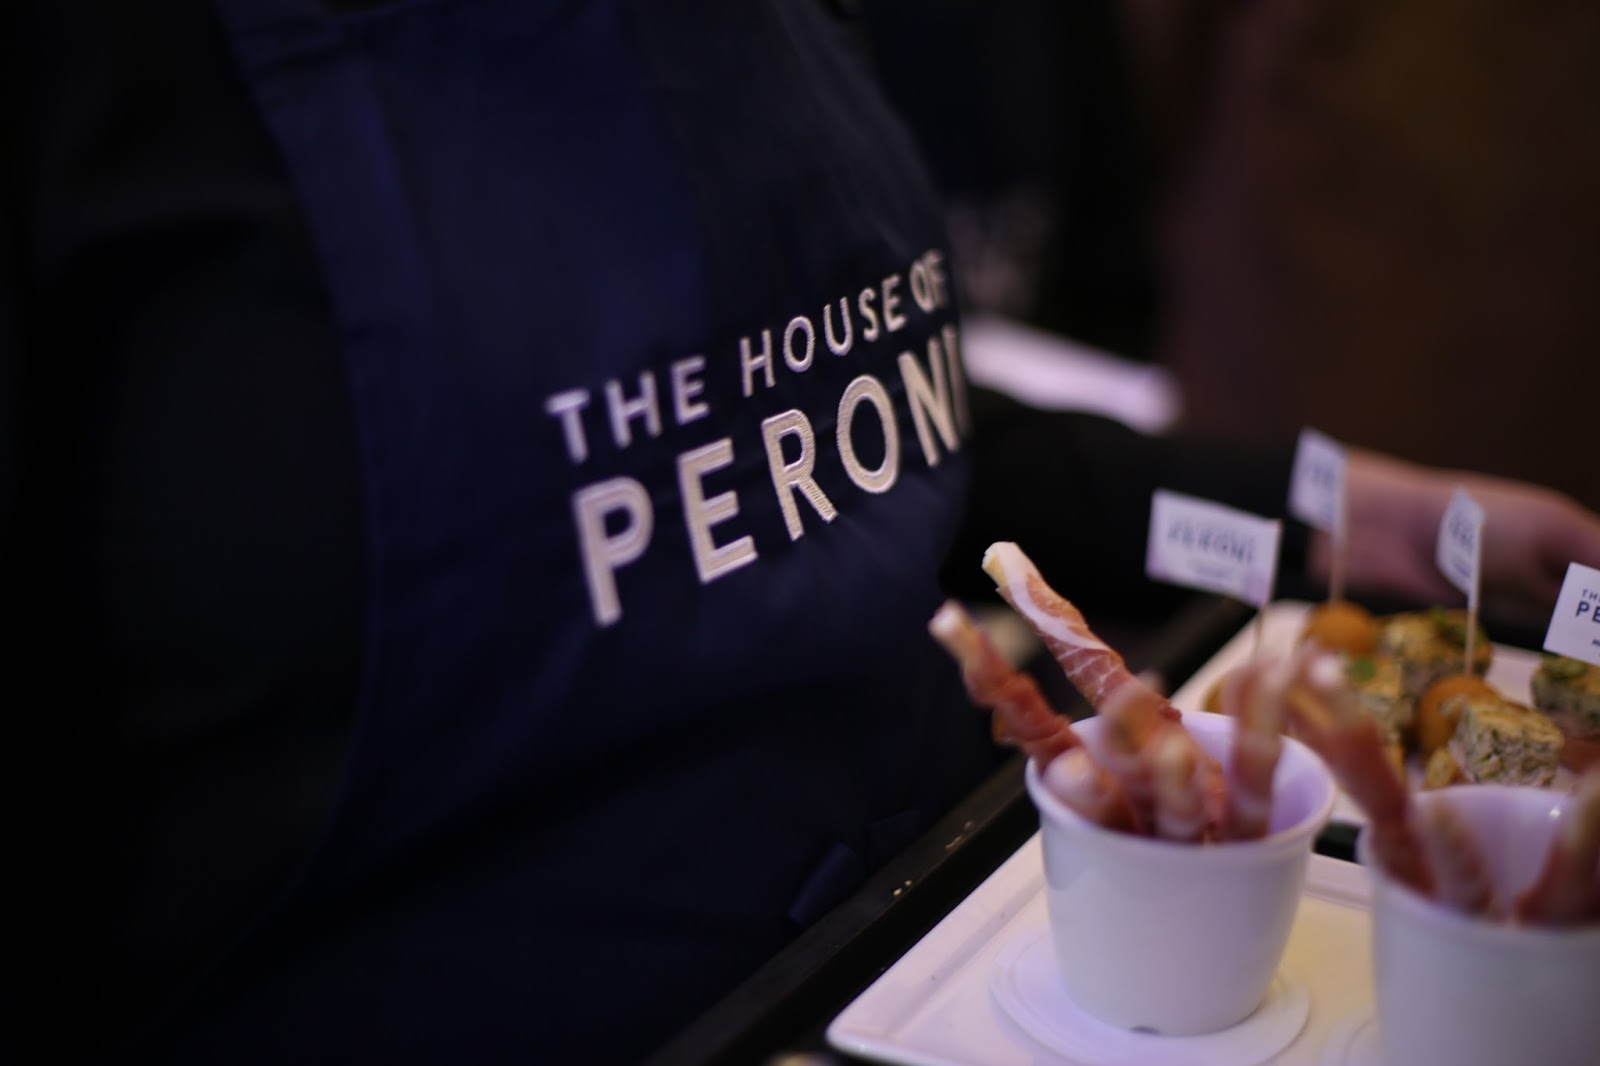 house of peroni